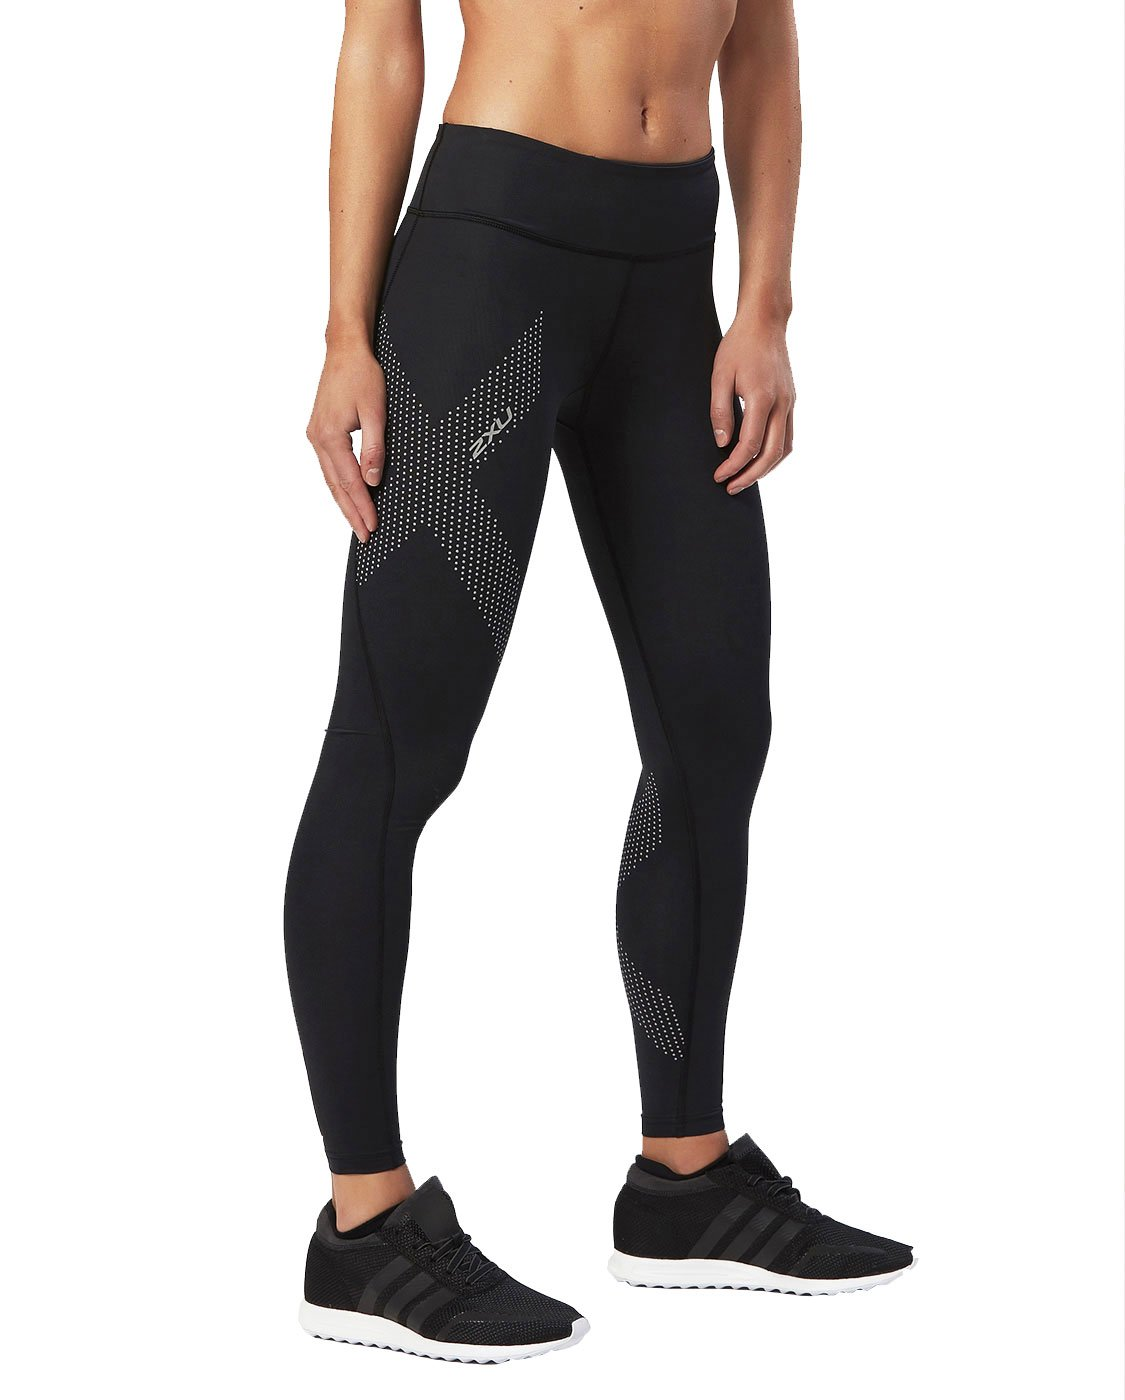 2XU Women's Mid-Rise Compression Tights, Black/Dotted Reflective Logo, Small